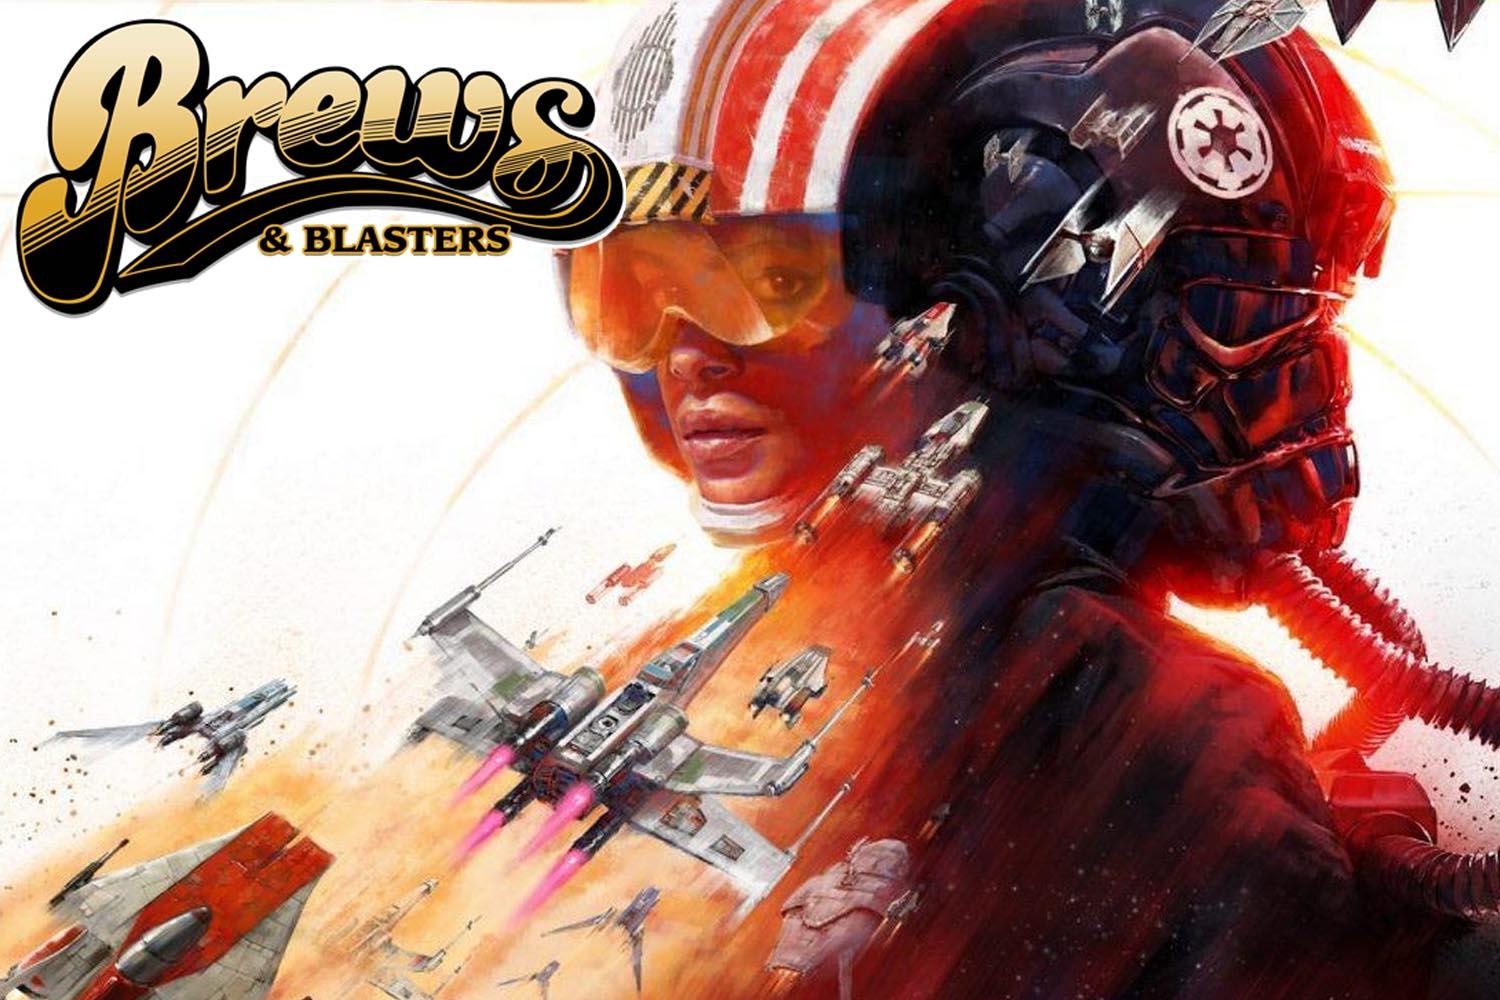 This week on Brews and Blasters, Chris and Joe rediscover their Renegade roots, remember the perfection of Don't Tell Mom the Babysitter's Dead, discover the trailer for Star Wars Squadrons, dissect the first chapter of Star Wars: The High Republic: Light of the Jedi first chapter and much more. The dishes are done, man! The Star Wars party starts NOW! It's time for Brews and Blasters.